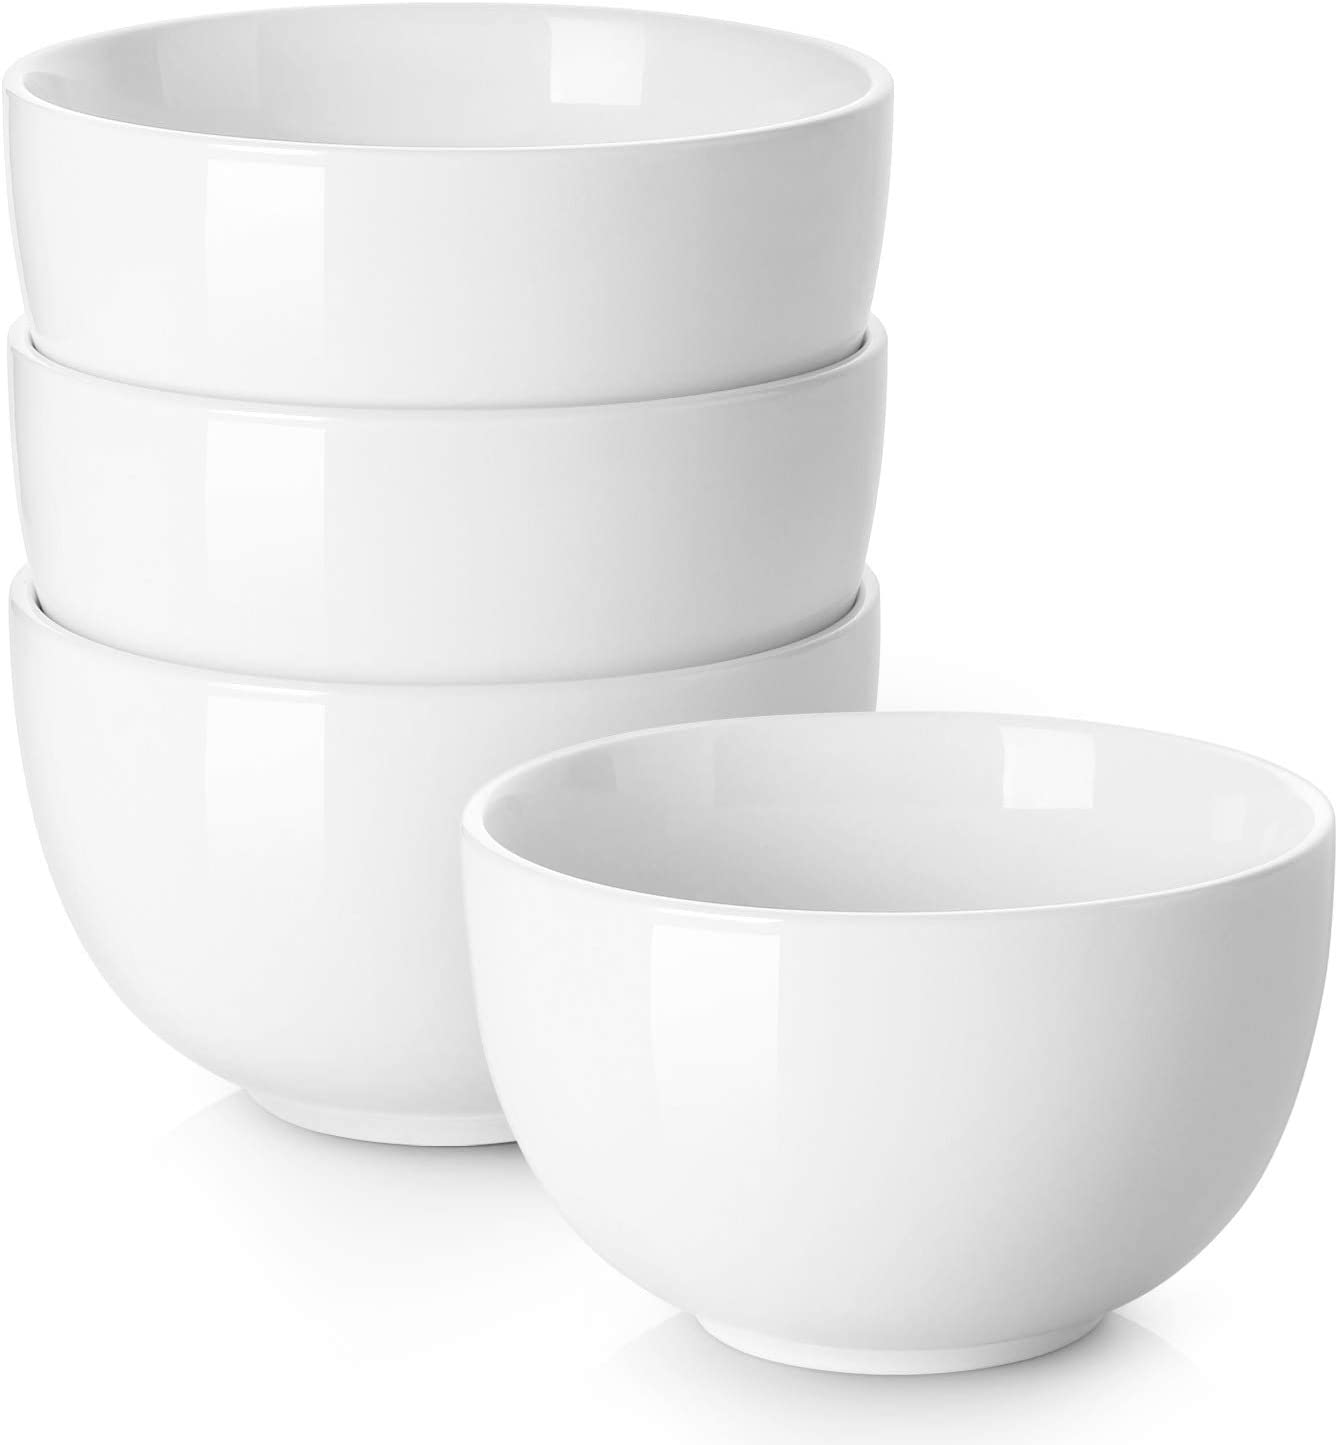 DOWAN Porcelain Bowls, 30 Oz Porcelain Bowl for Cereal, Soup, Ramen, Rice Bowls, Bowl Set of 4, White